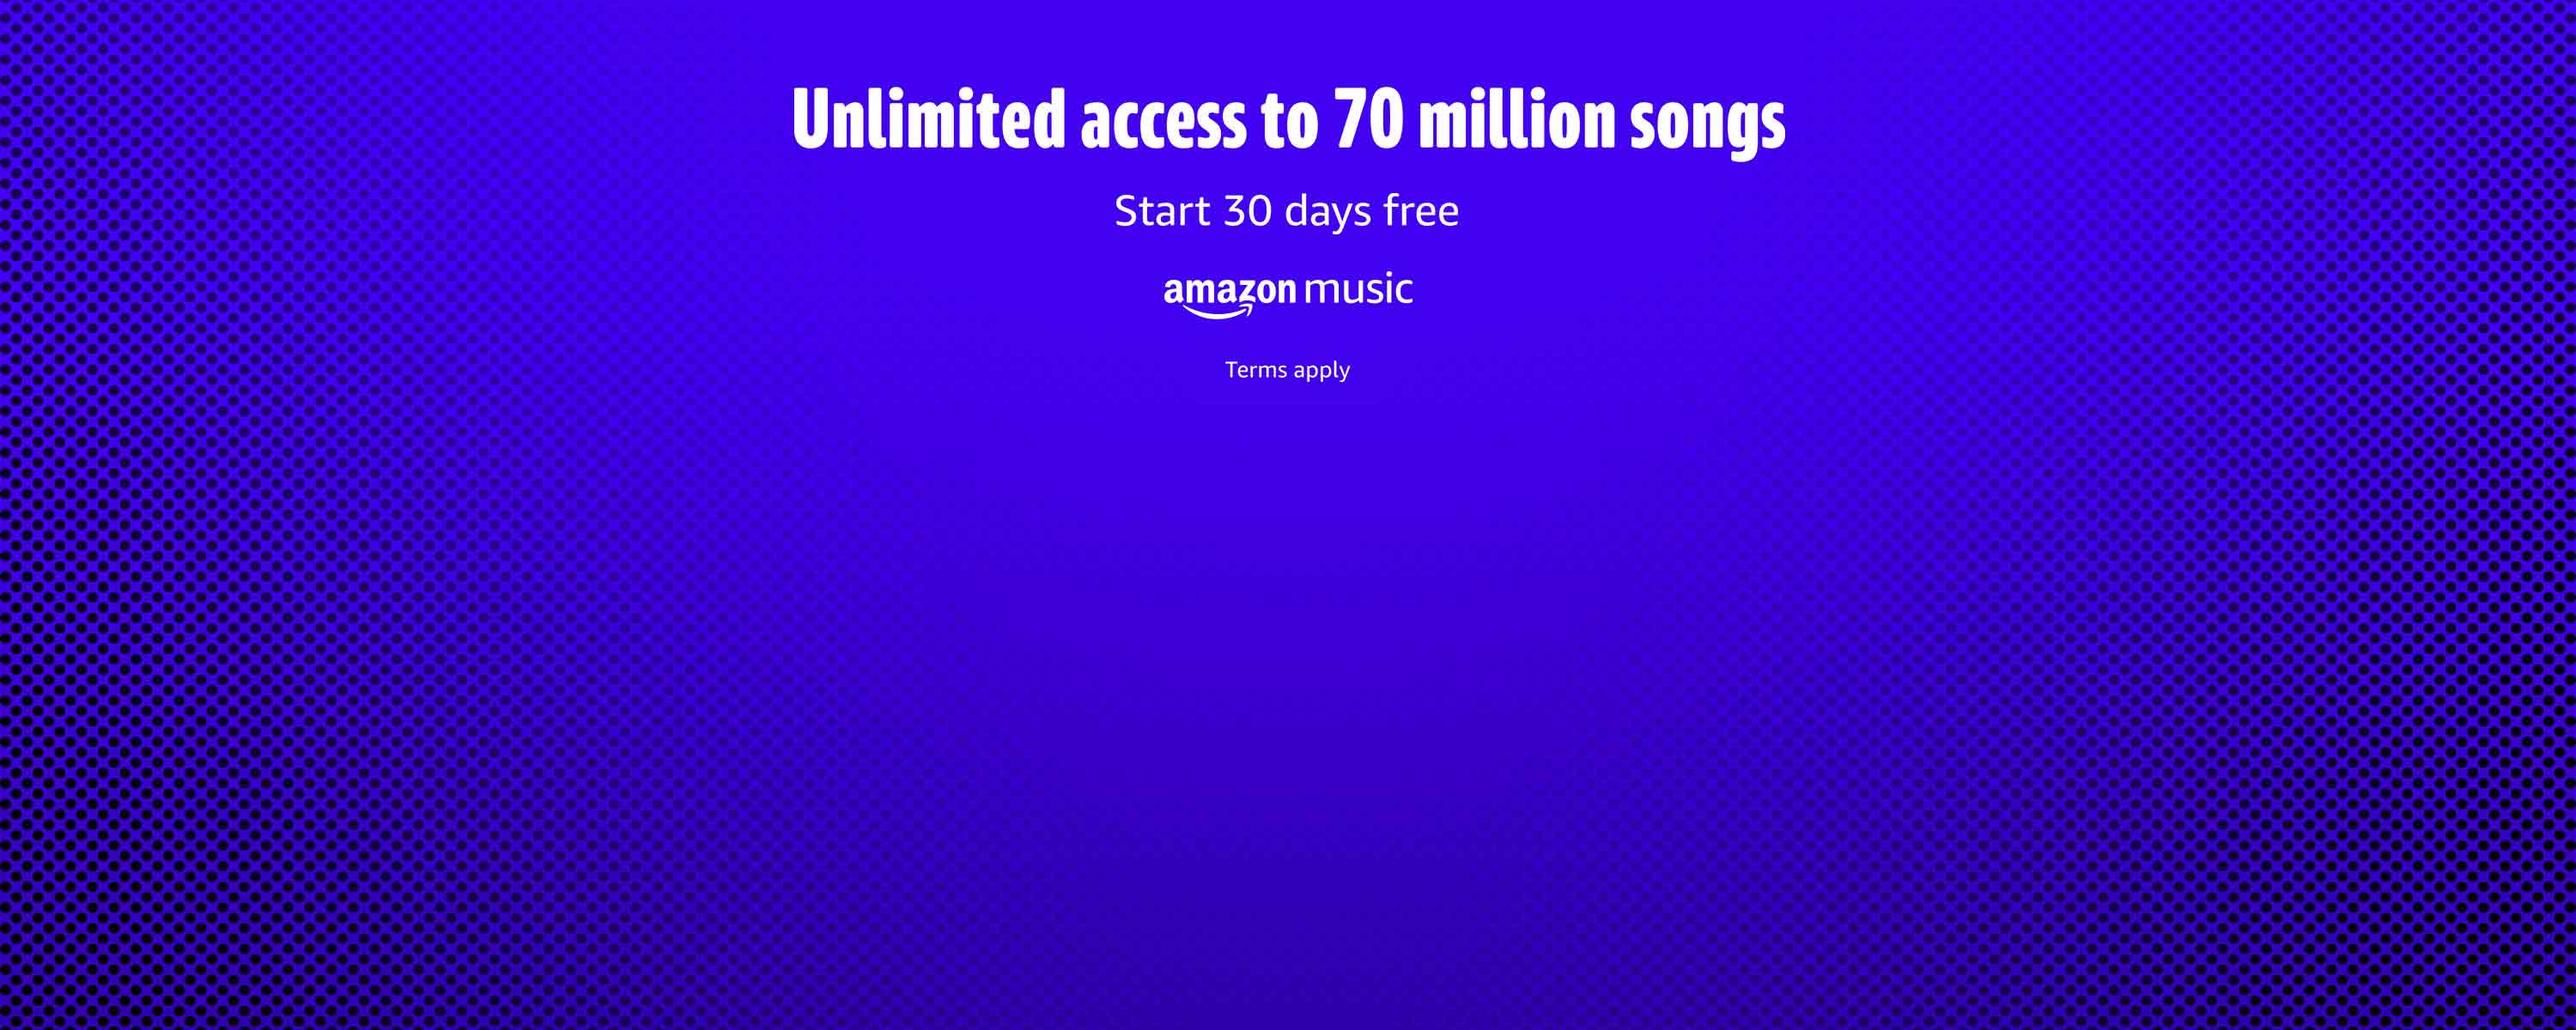 Unlimited access to 70 million songs. Start 30 days free.